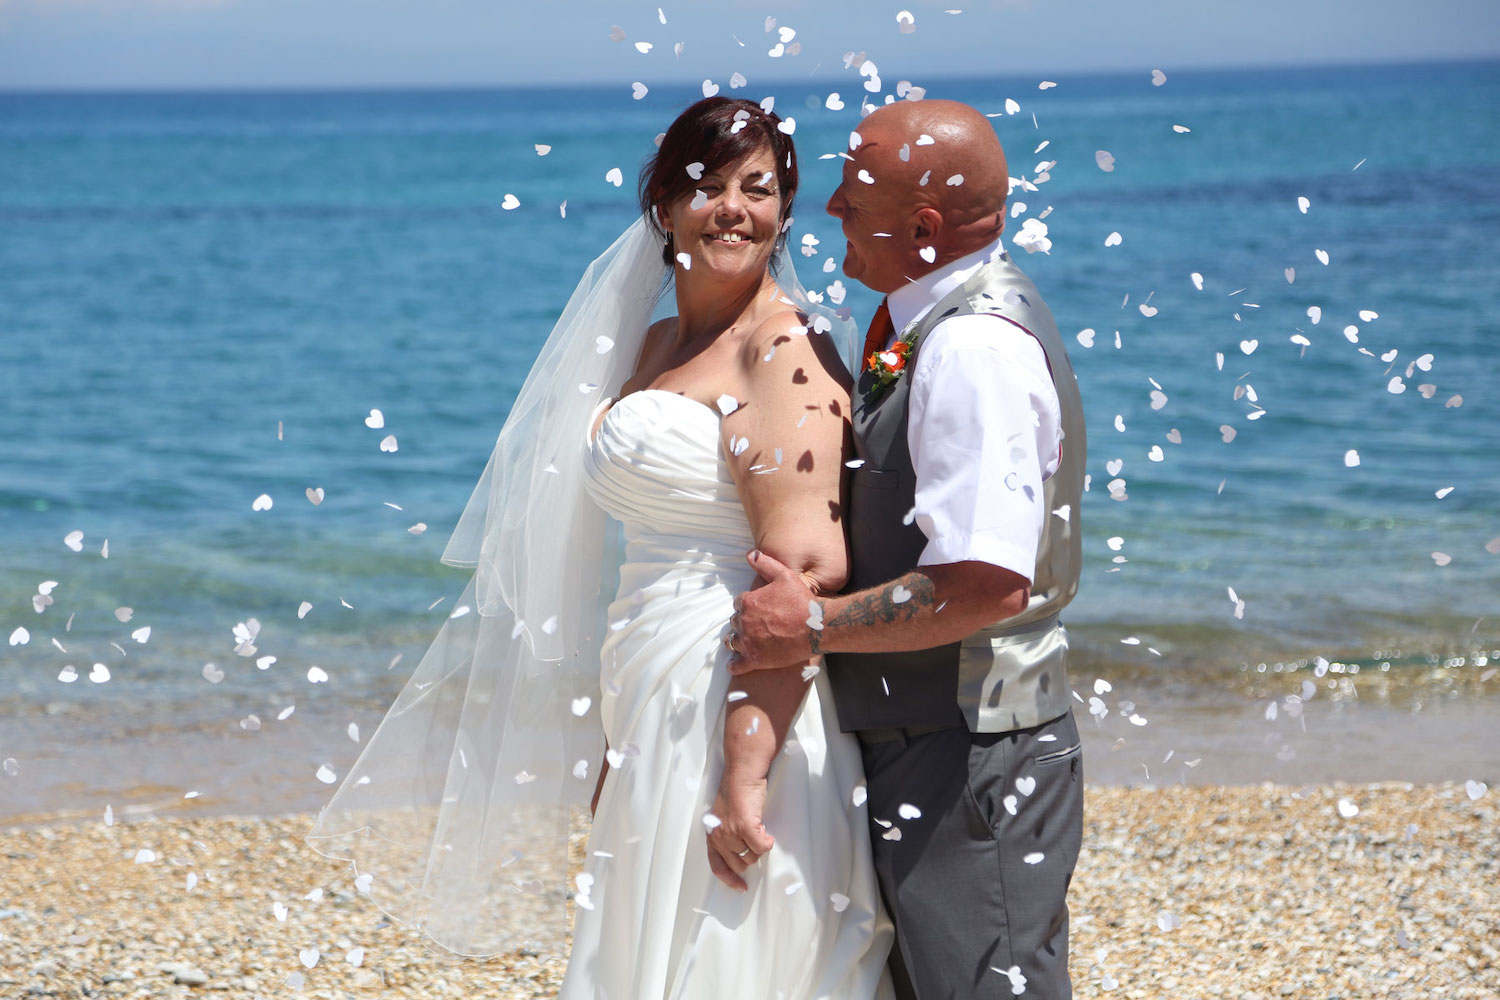 Weddings in Kefalonia | 9 Muses Hotel Skala Kefalonia | Hotel in Skala Kefalonia with small traditional chapel in a romantic setting is the ideal location to have the wedding day of your dreams. Kefalonia Wedding Reception Venues, Wedding Packages Kefalonia, Kefalonia Weddings, Kefalonia Wedding Planners, Wedding Hotels in Kefalonia, Weddings in Skala Kefalonia,